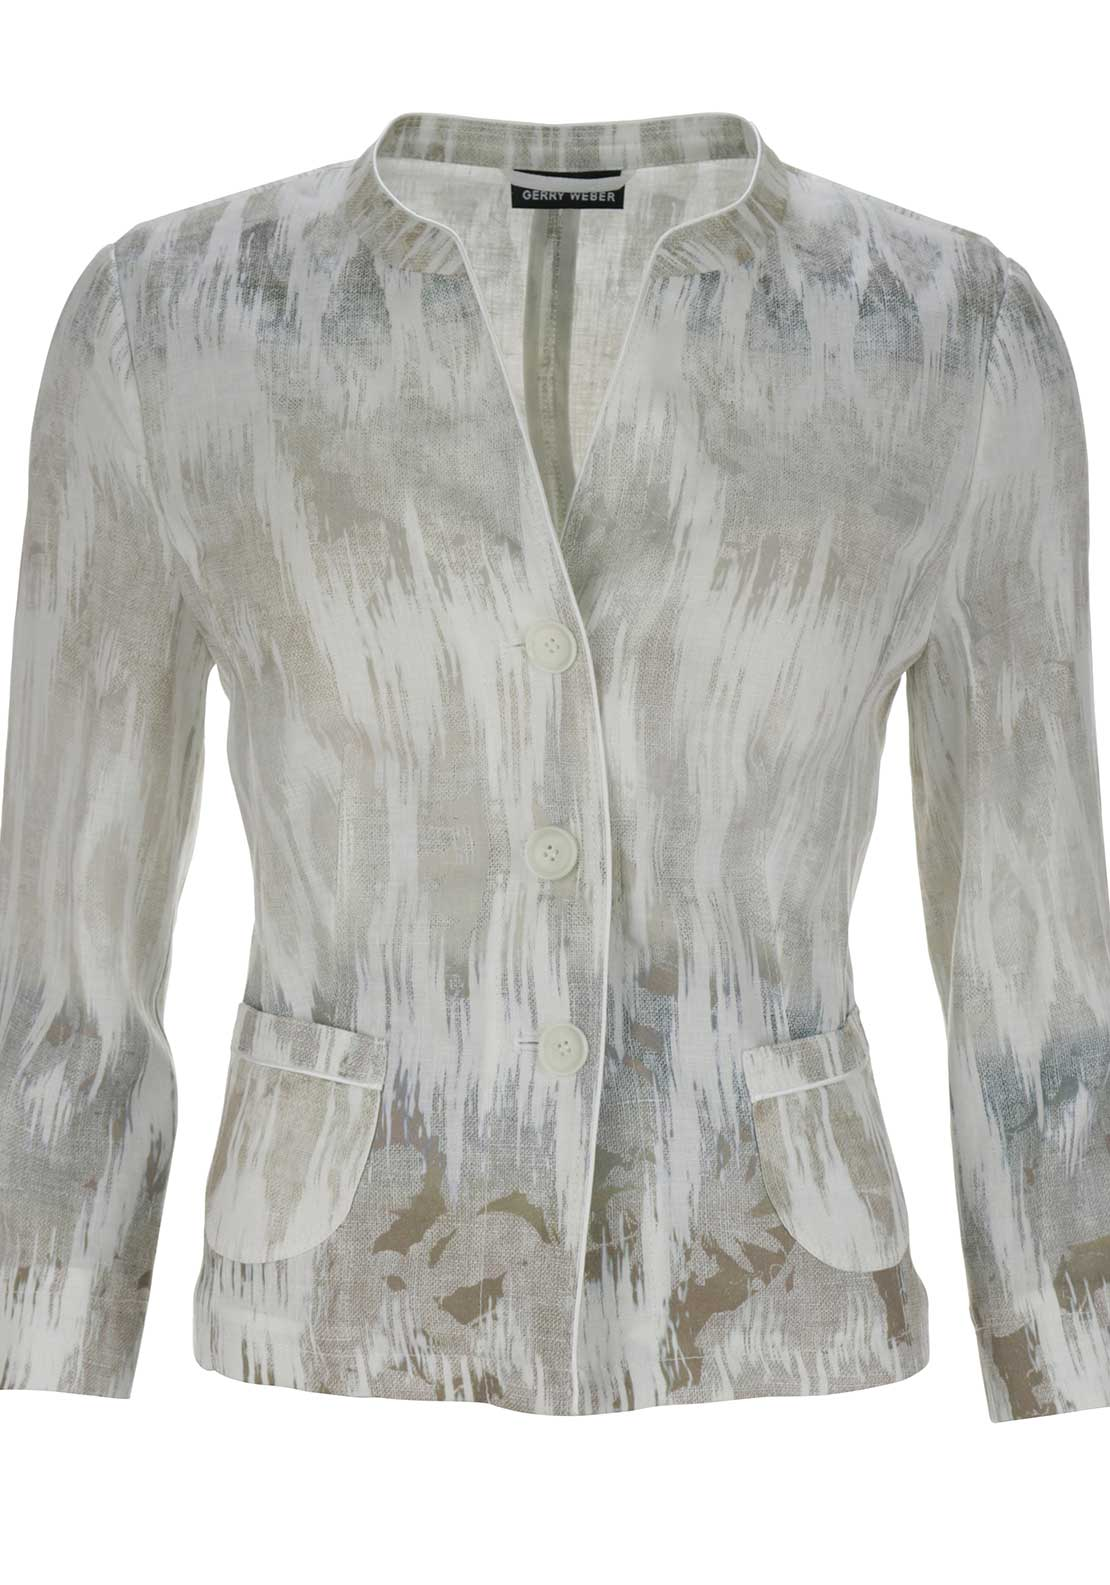 Gerry Weber Printed Linen Jacket, Cream Multi